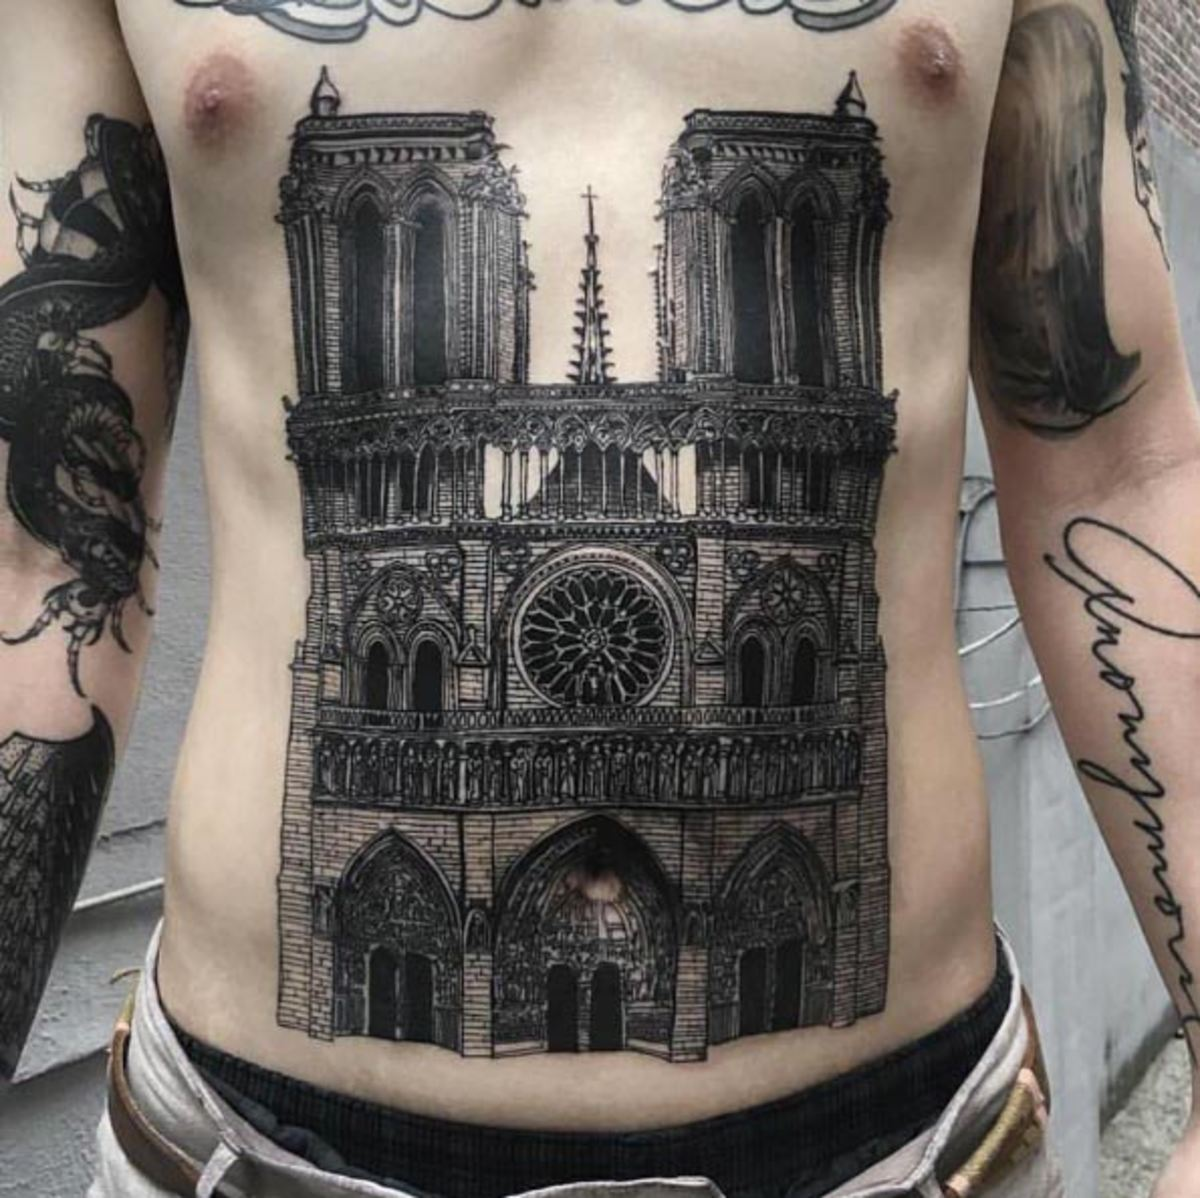 notre-dame-cathedral-tattoo